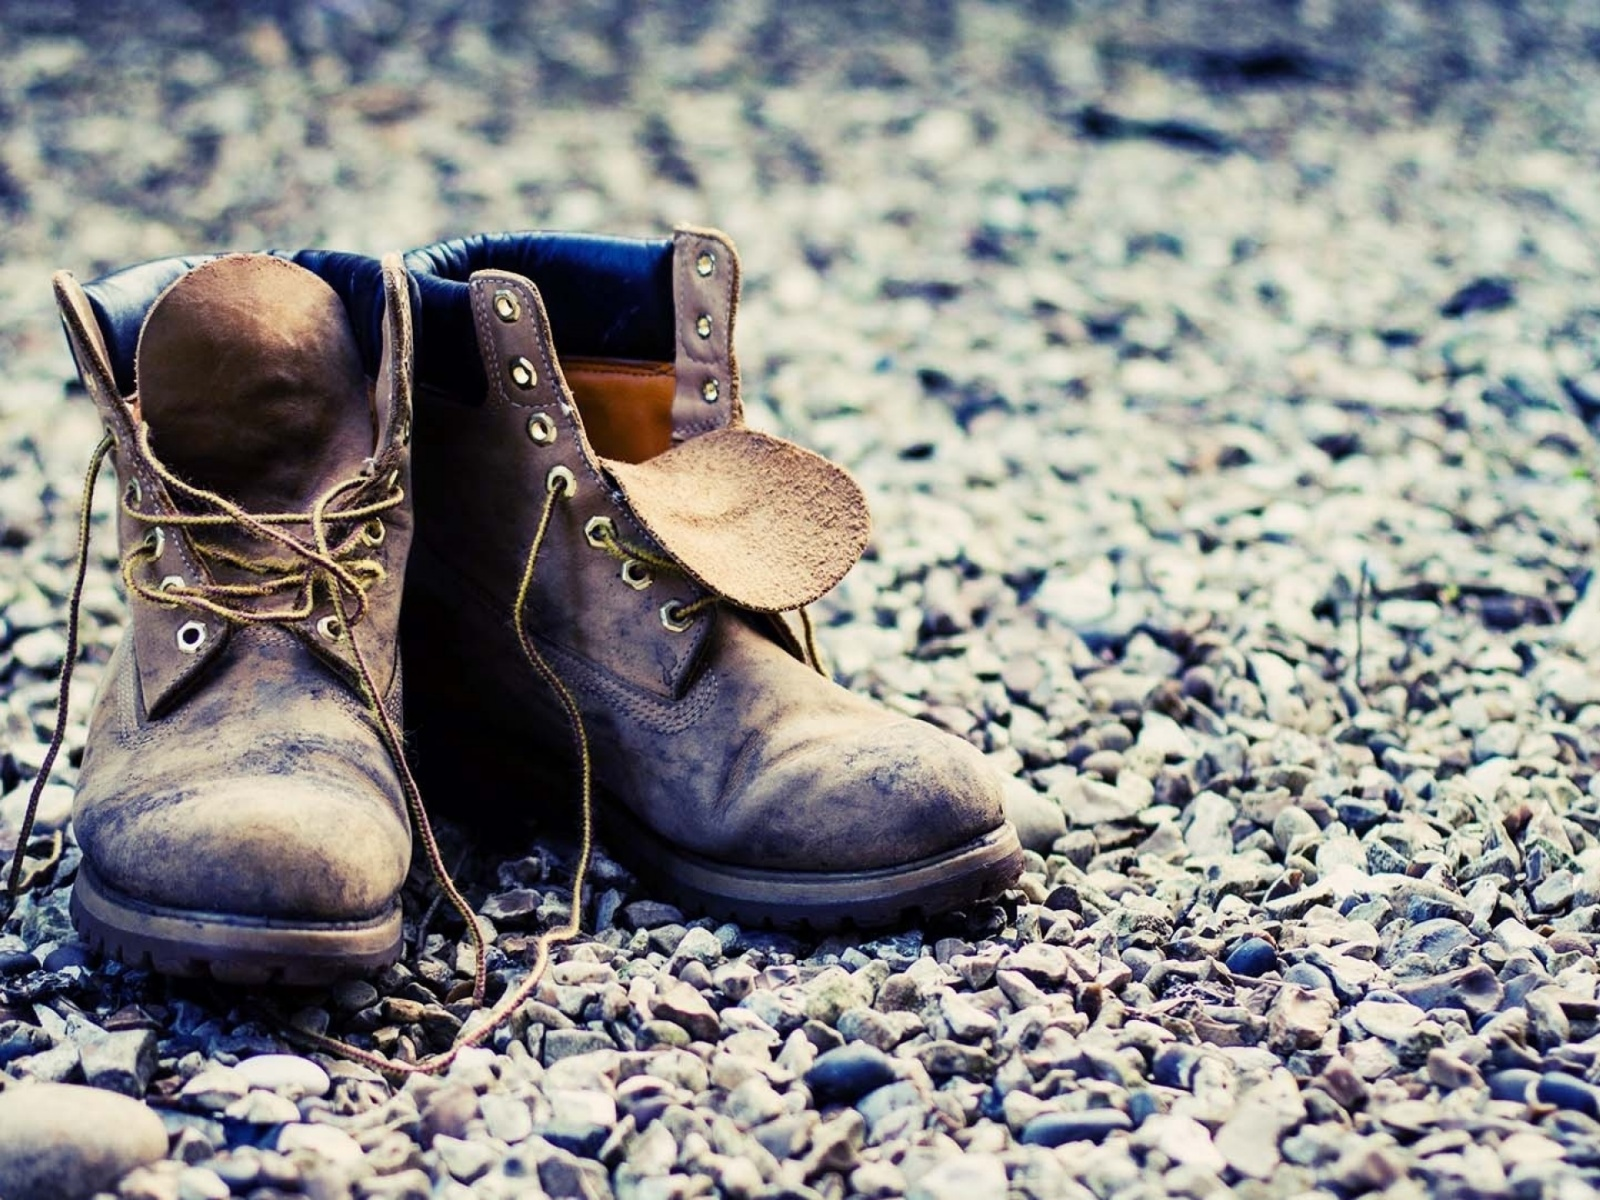 1500x500 Shoes Old Boots Twitter Header Photo